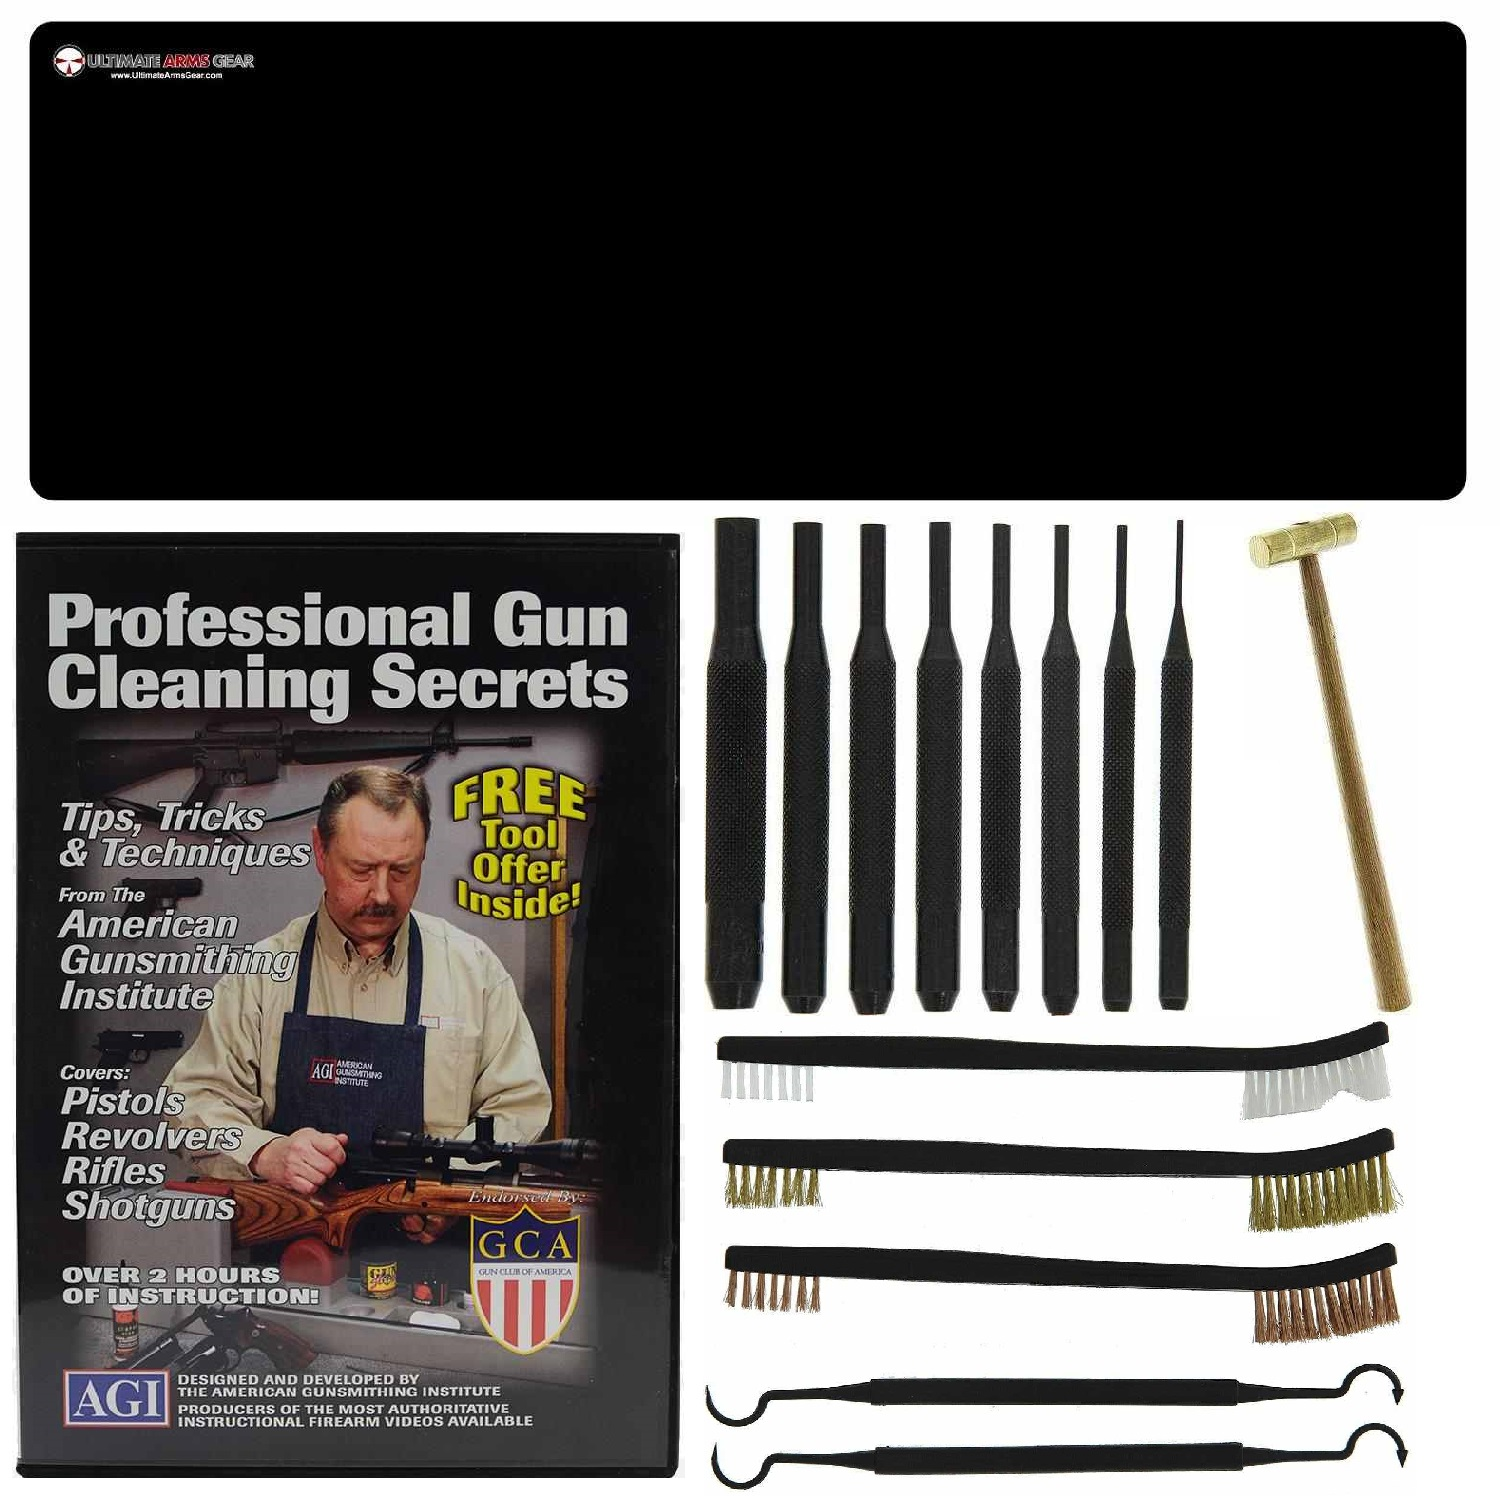 AGI DVD Pro Gun Cleaning Course Winchester 12 21 1200 1300 SUPER-X Shotgun + Ultimate Arms Gear Gunsmith & Armorer... by